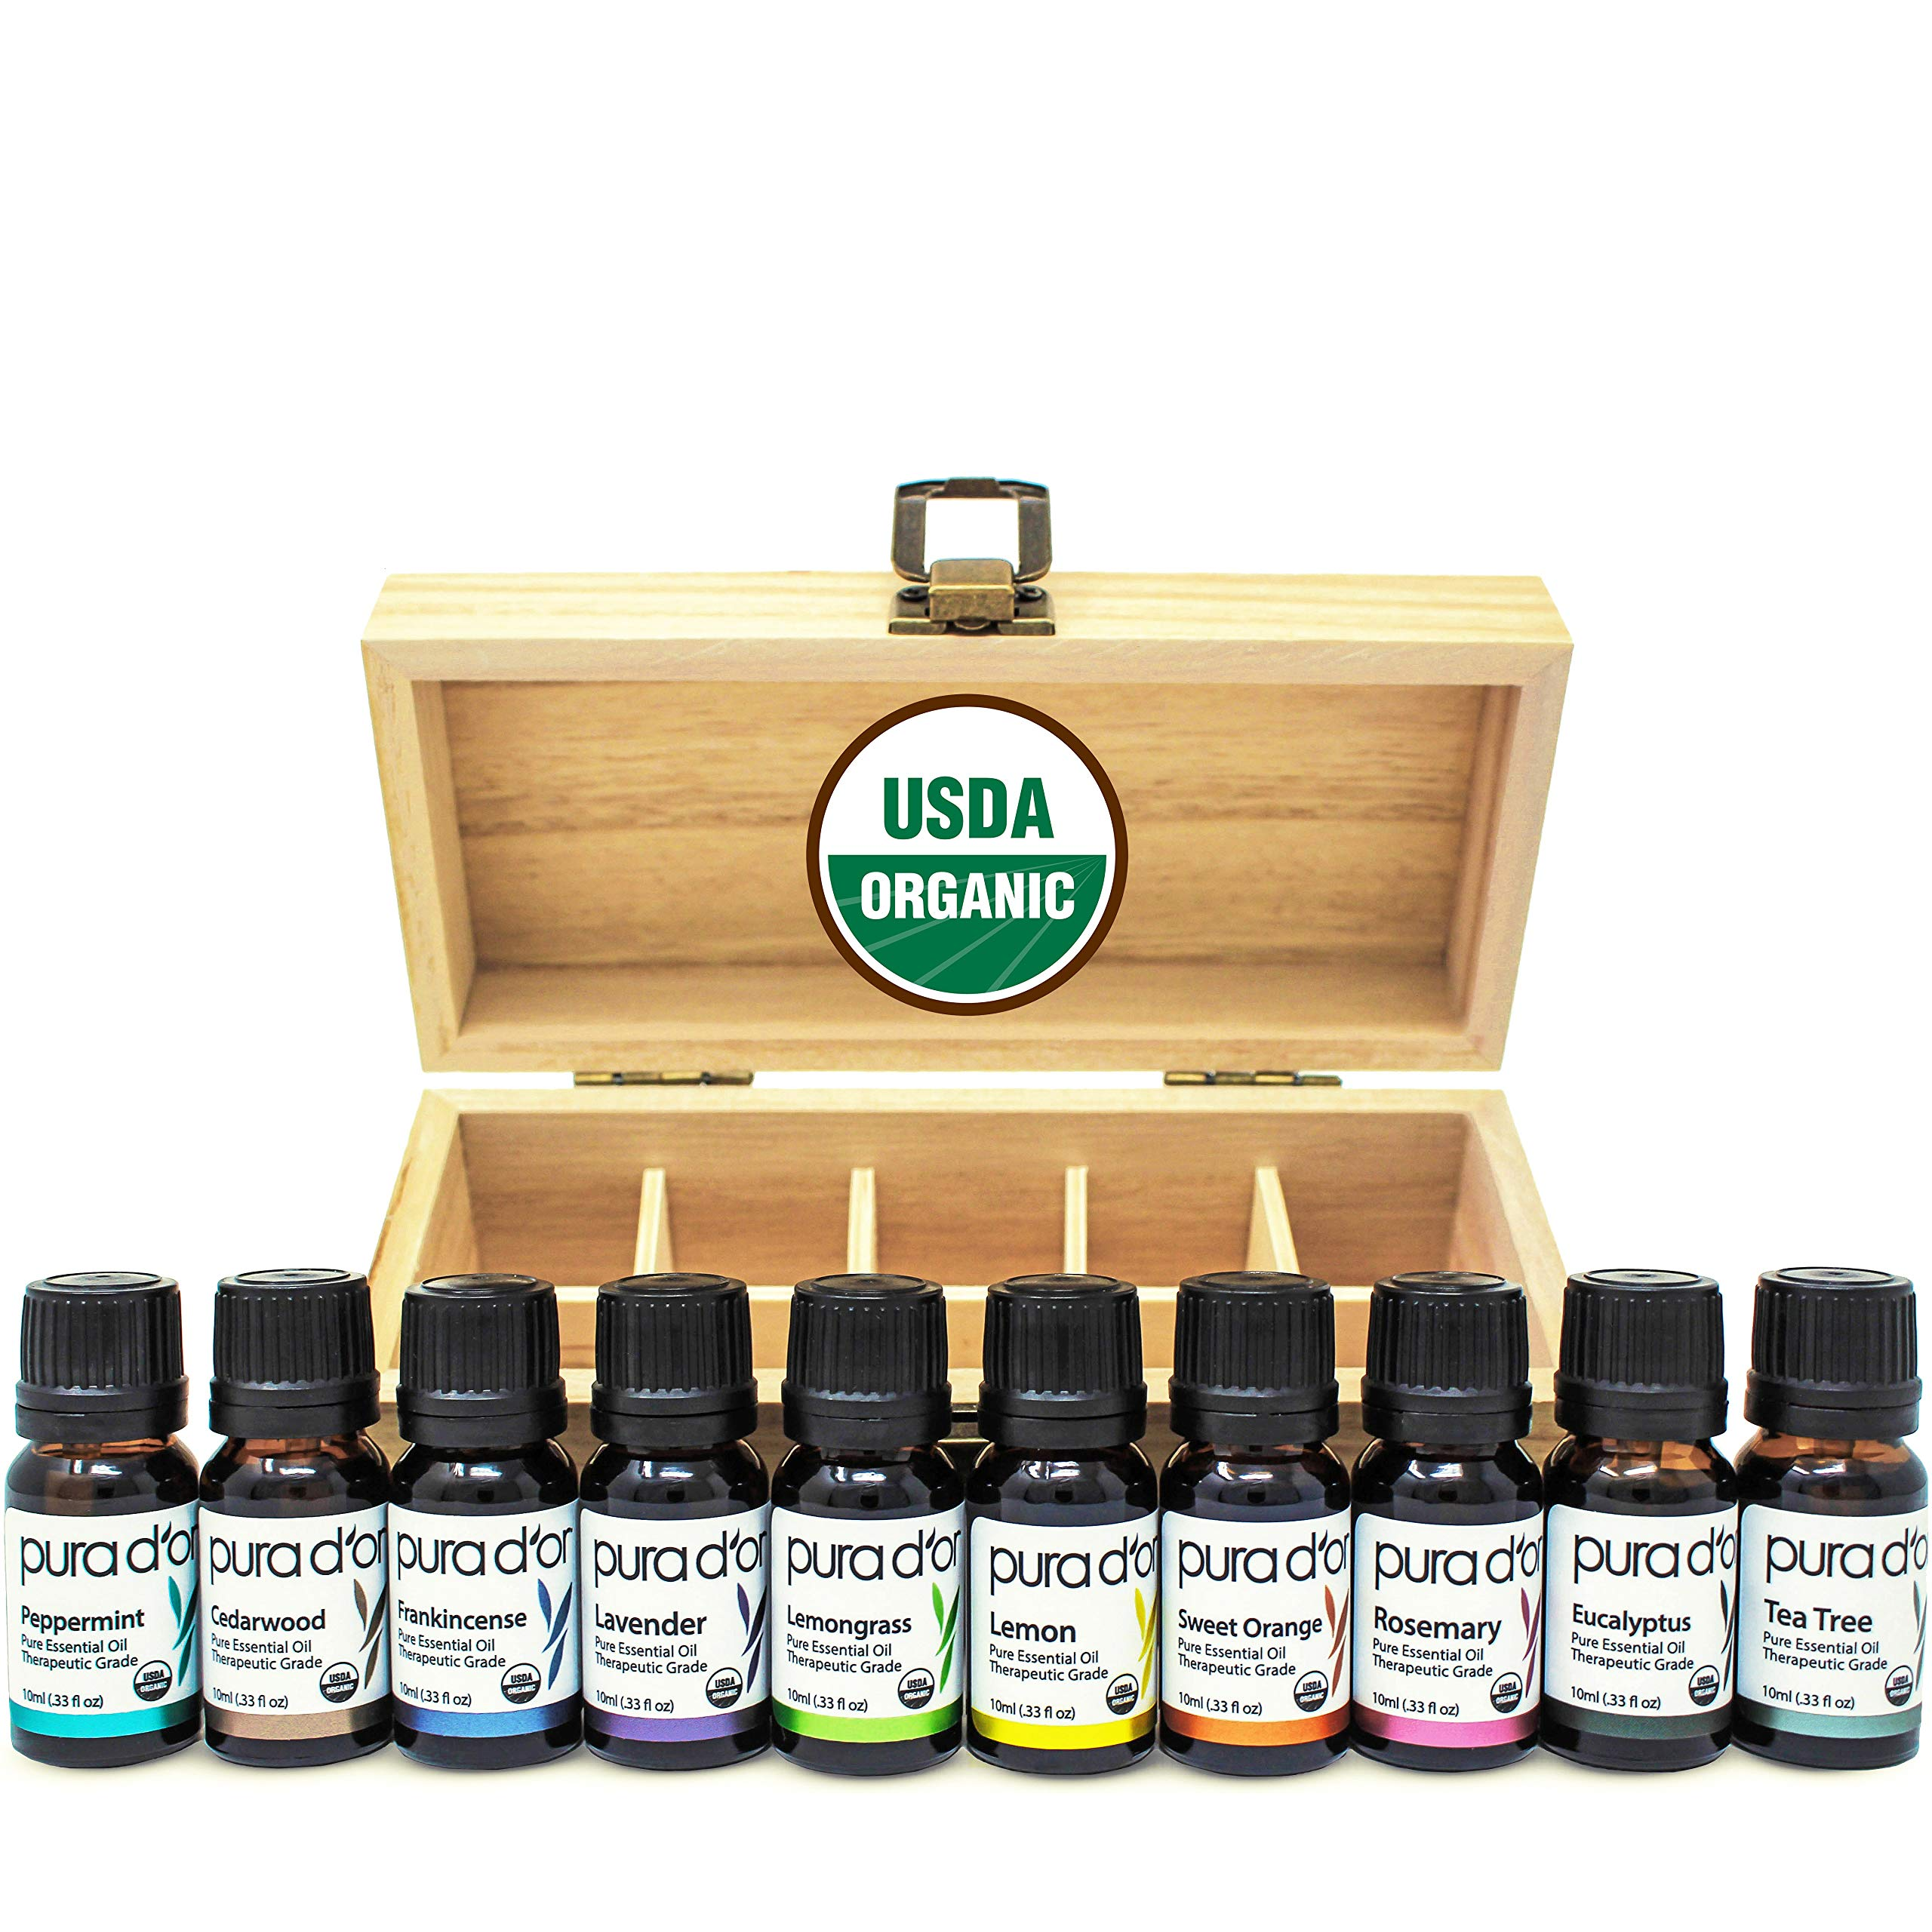 PURA D'OR Essential Oils Wood Box 10mL 10-Set 100% Pure USDA Organic Therapeutic Grade (Tea Tree, Lemon, Lavender, Sweet Orange, Rosemary, Lemongrass, Frankincense, Peppermint, Eucalyptus, Cedarwood) by PURA D'OR